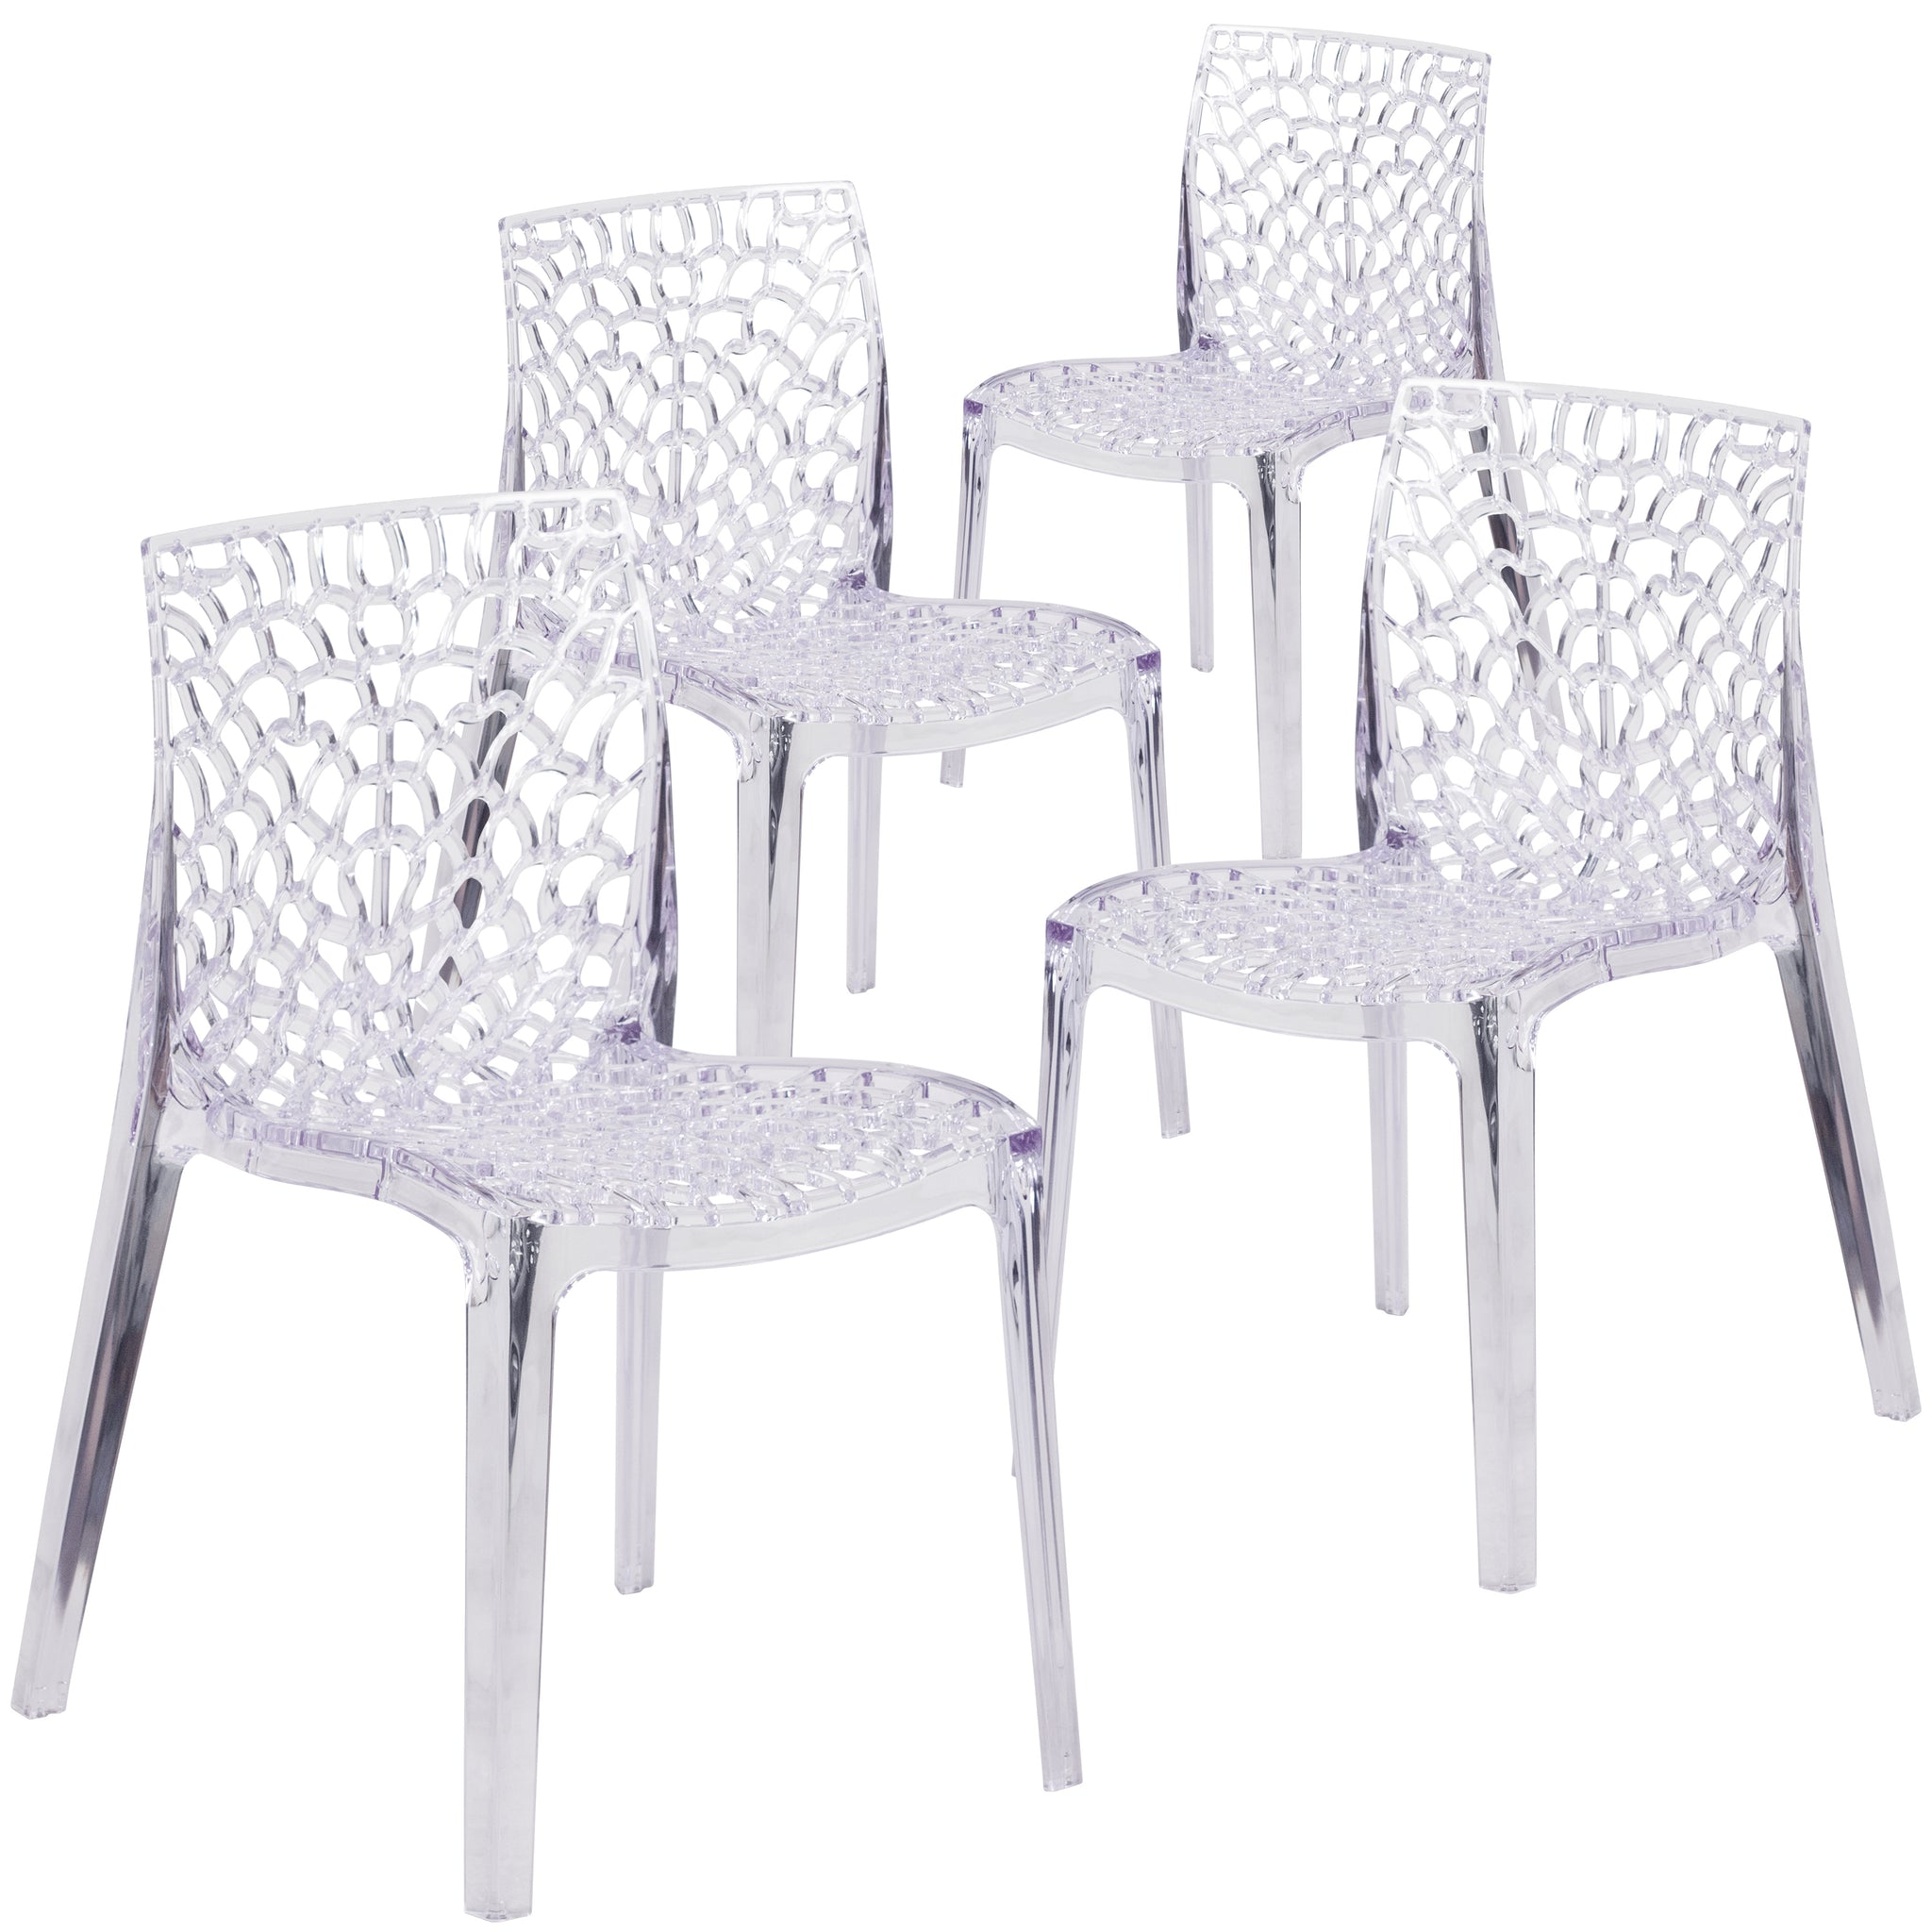 4 Pk. Vision Series Transparent Stacking Side Chair: Clear